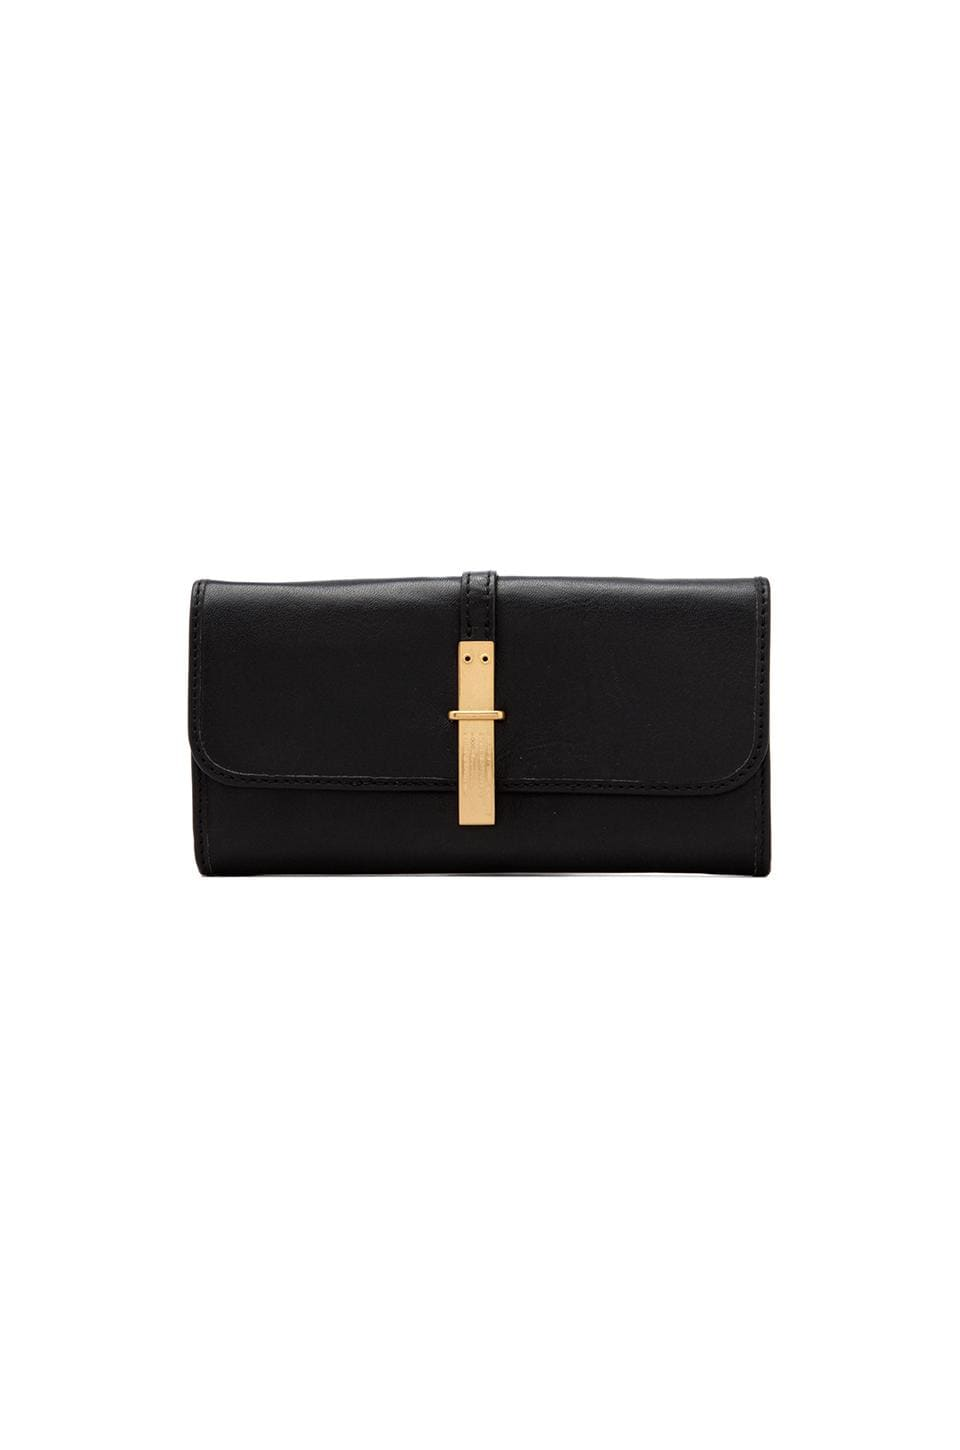 Marc by Marc Jacobs Blizznezz New Continental Wallet in Black